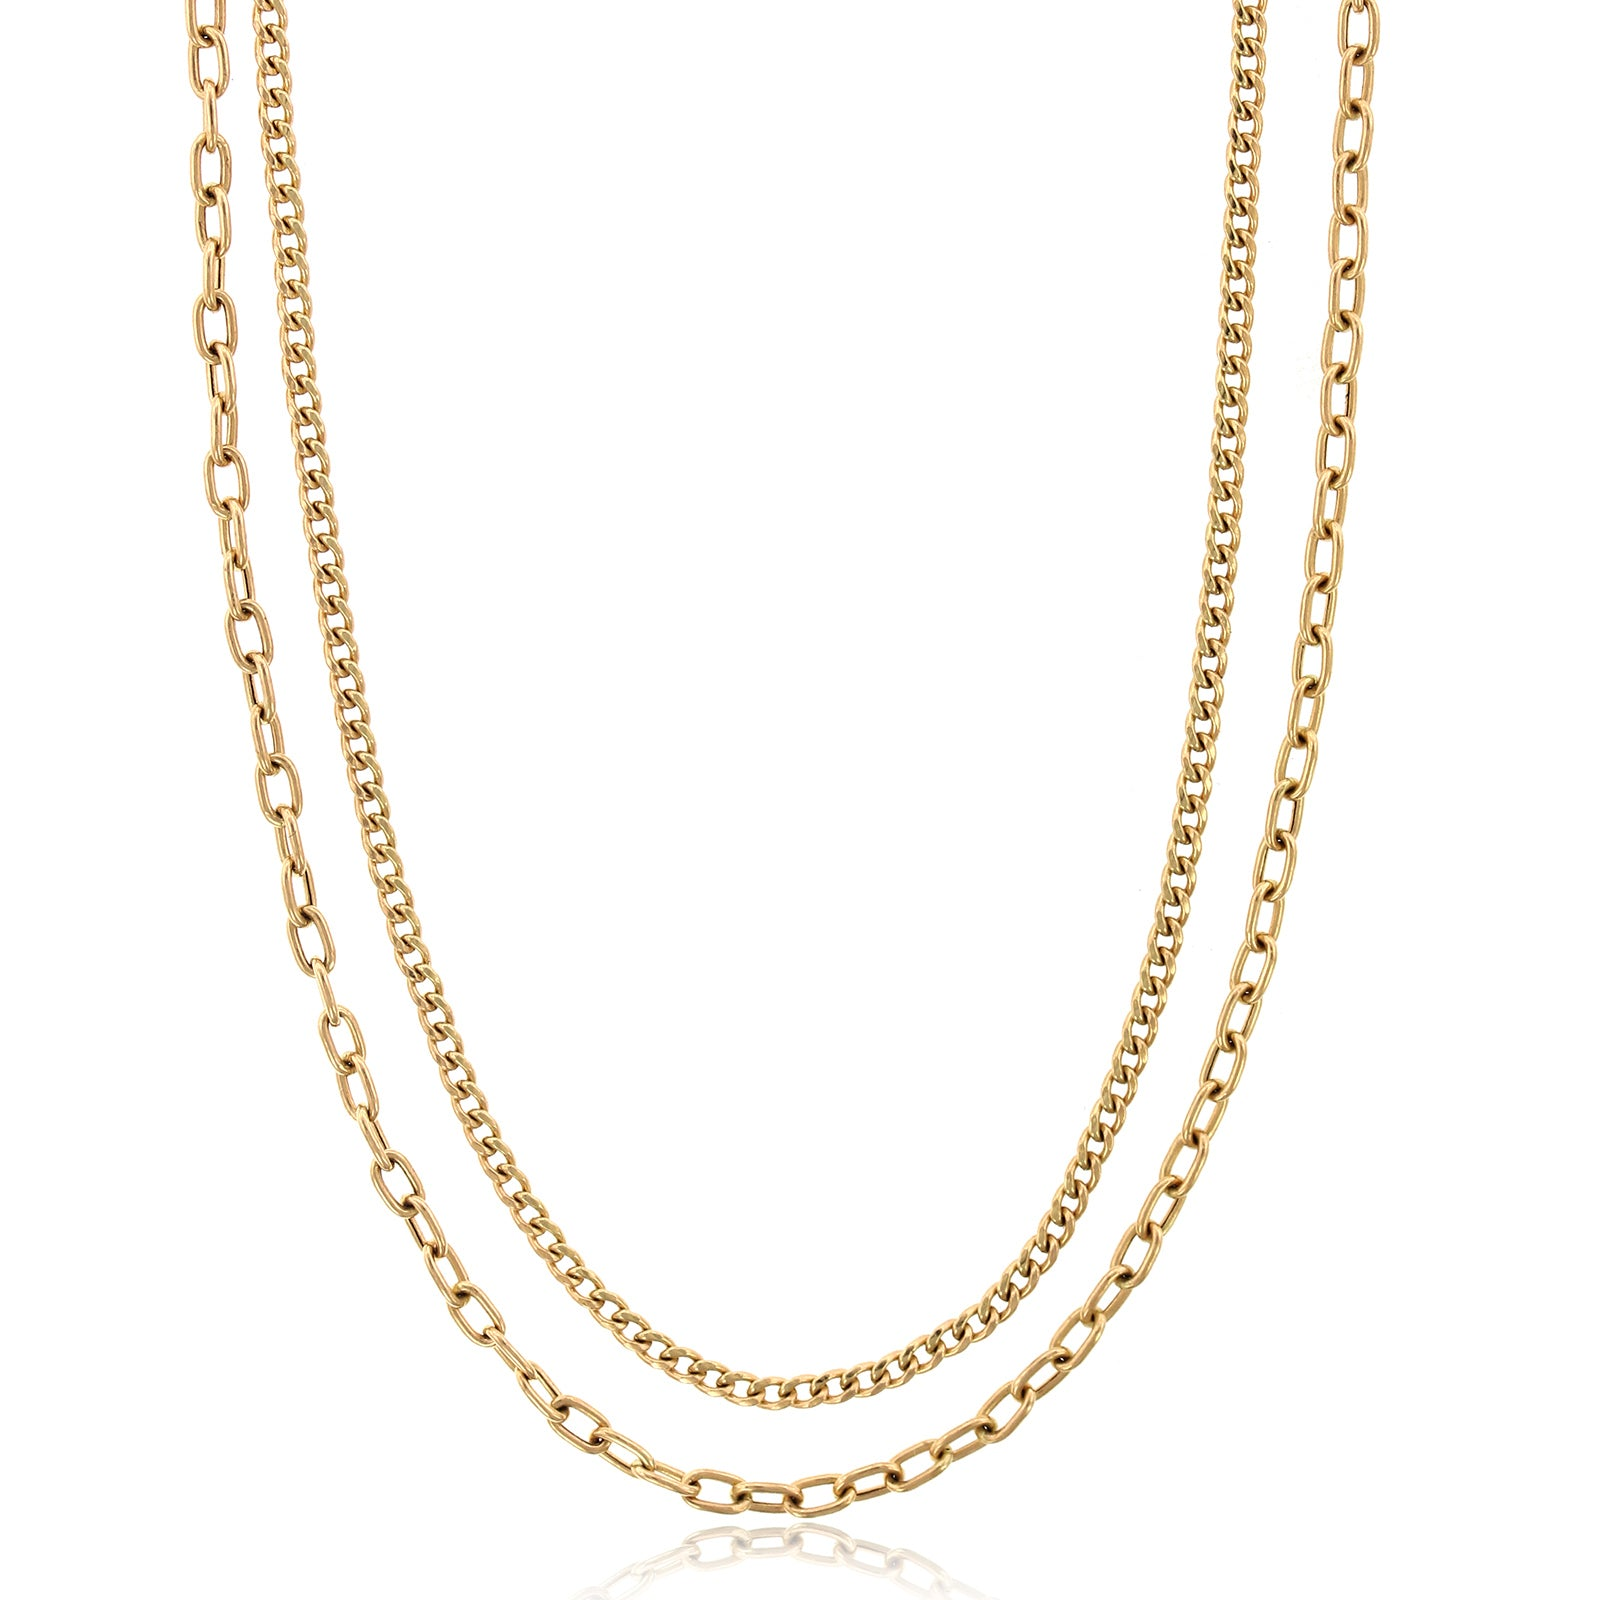 14K Yellow Gold Double Curb Link Chain